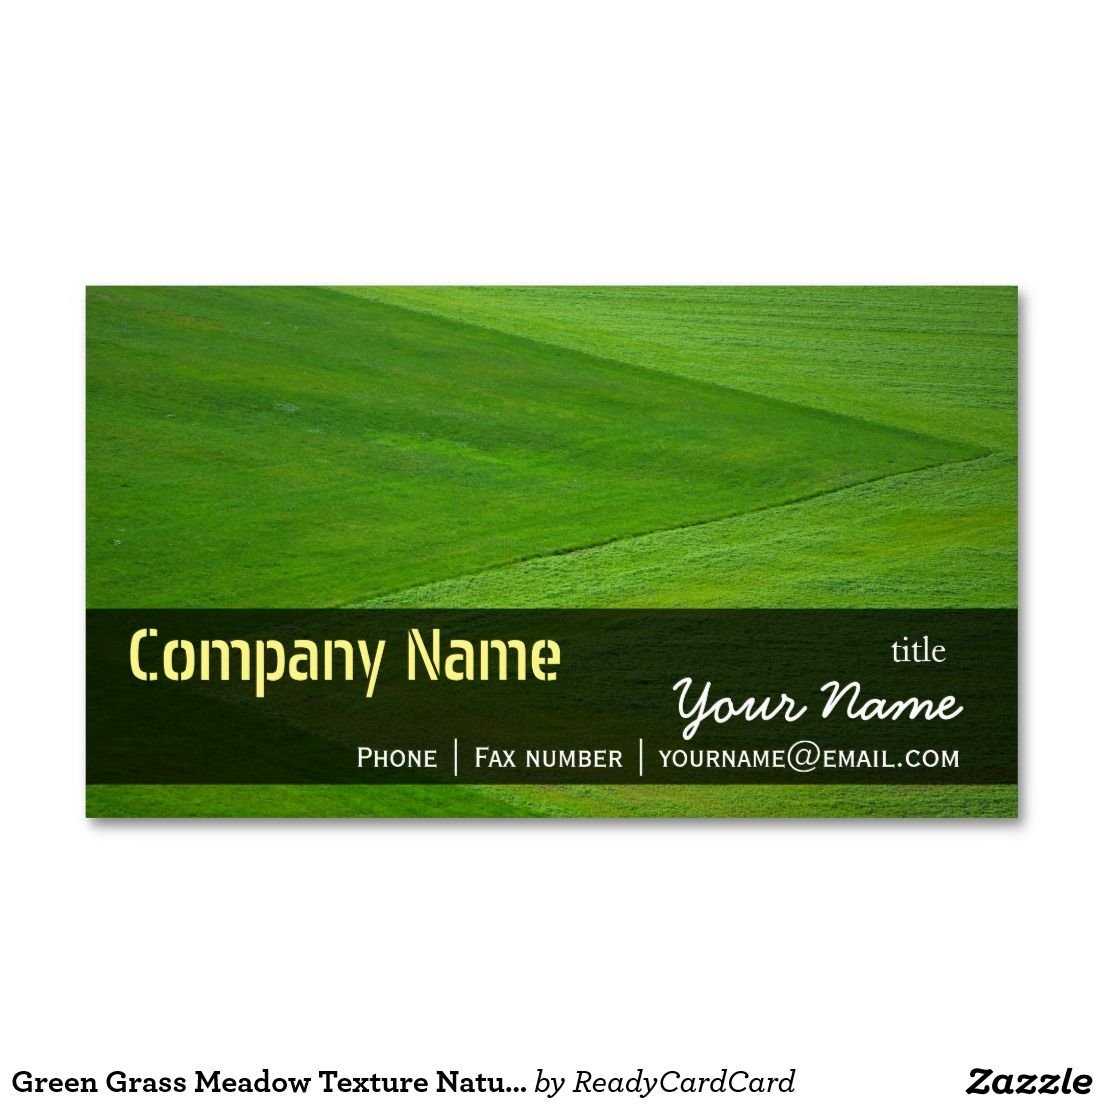 Green grass meadow texture nature farm background business card green grass meadow texture nature farm background business card magicingreecefo Choice Image